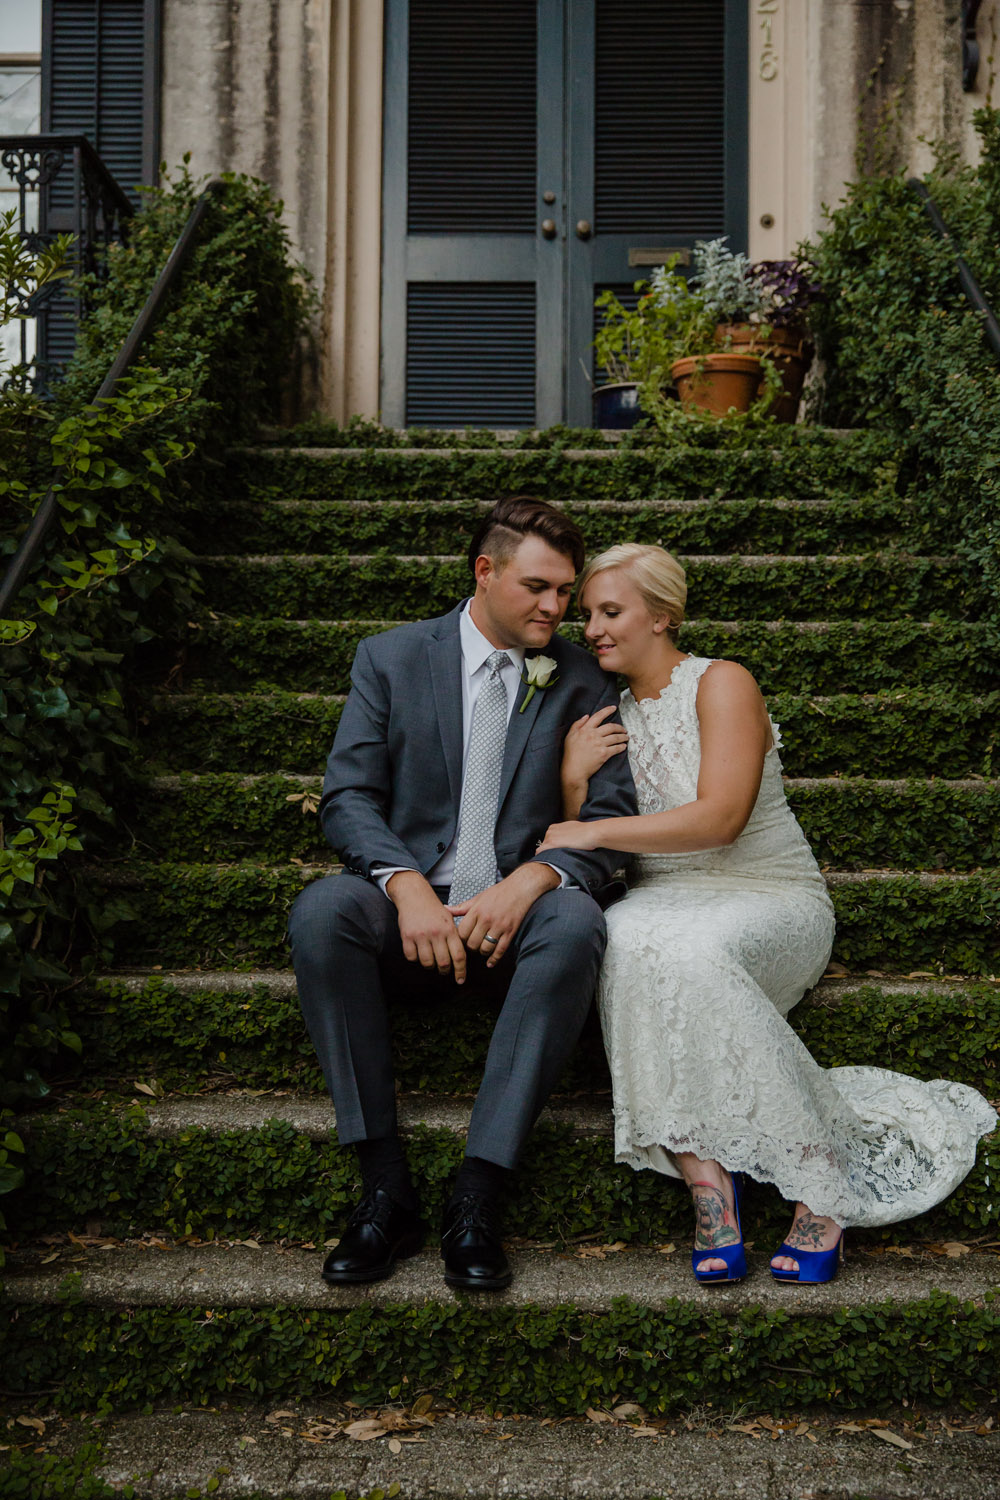 Atlanta Wedding Photographers Savannah Elopement Photographer Destination Photography_1052.jpg